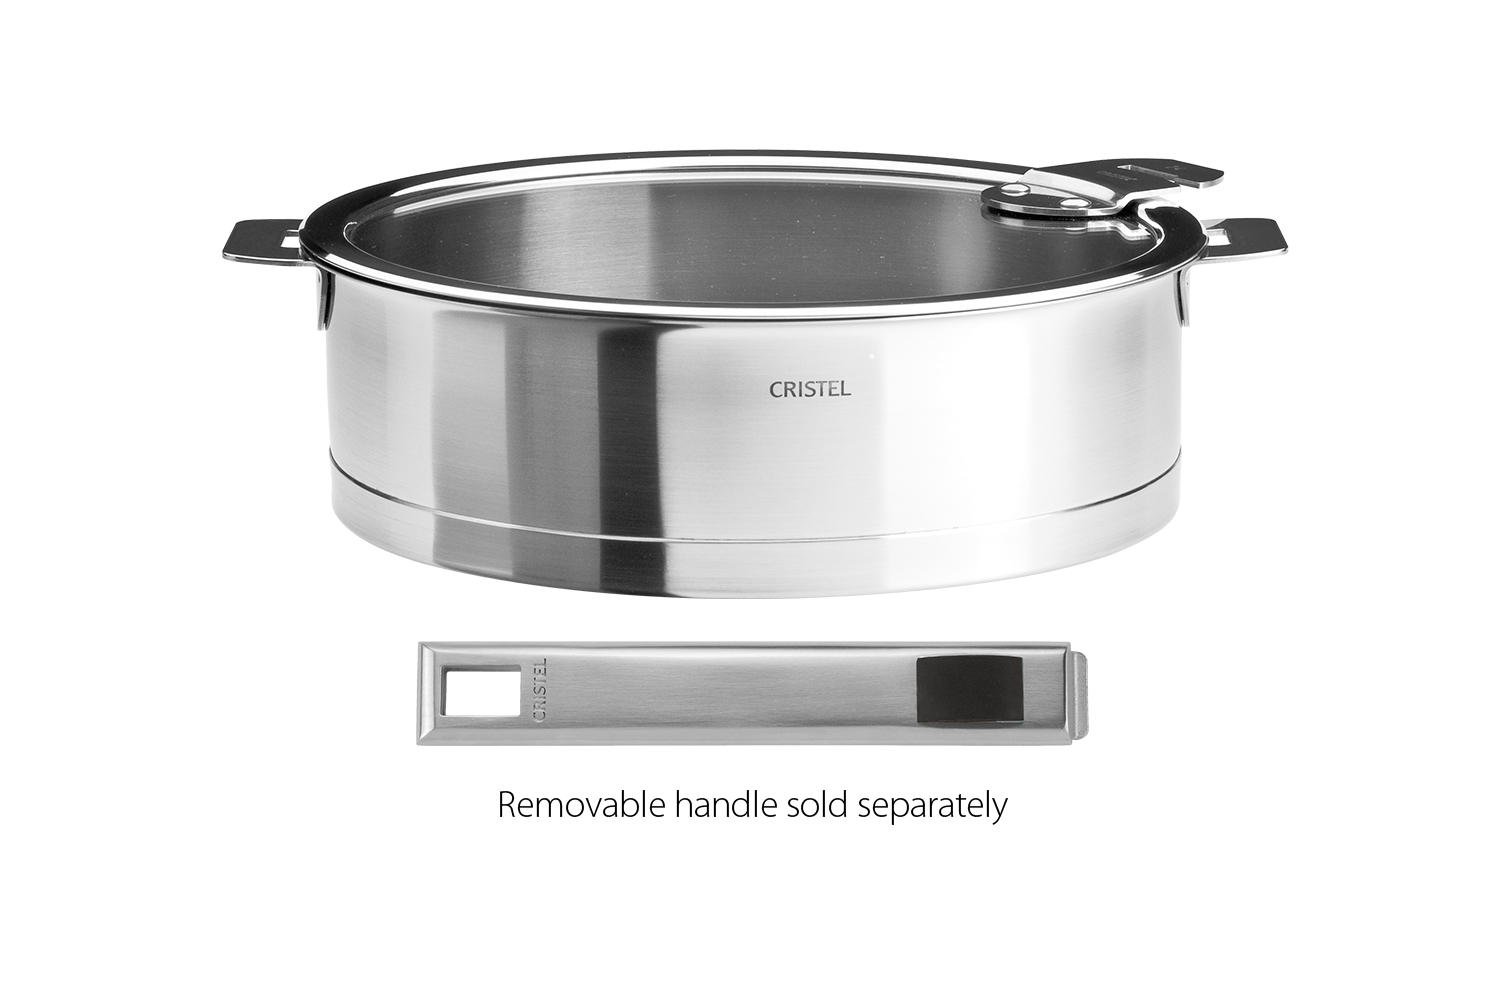 Cristel Strate Brushed Stainless 3.5 qt. Saute Pan w/Glass Lid